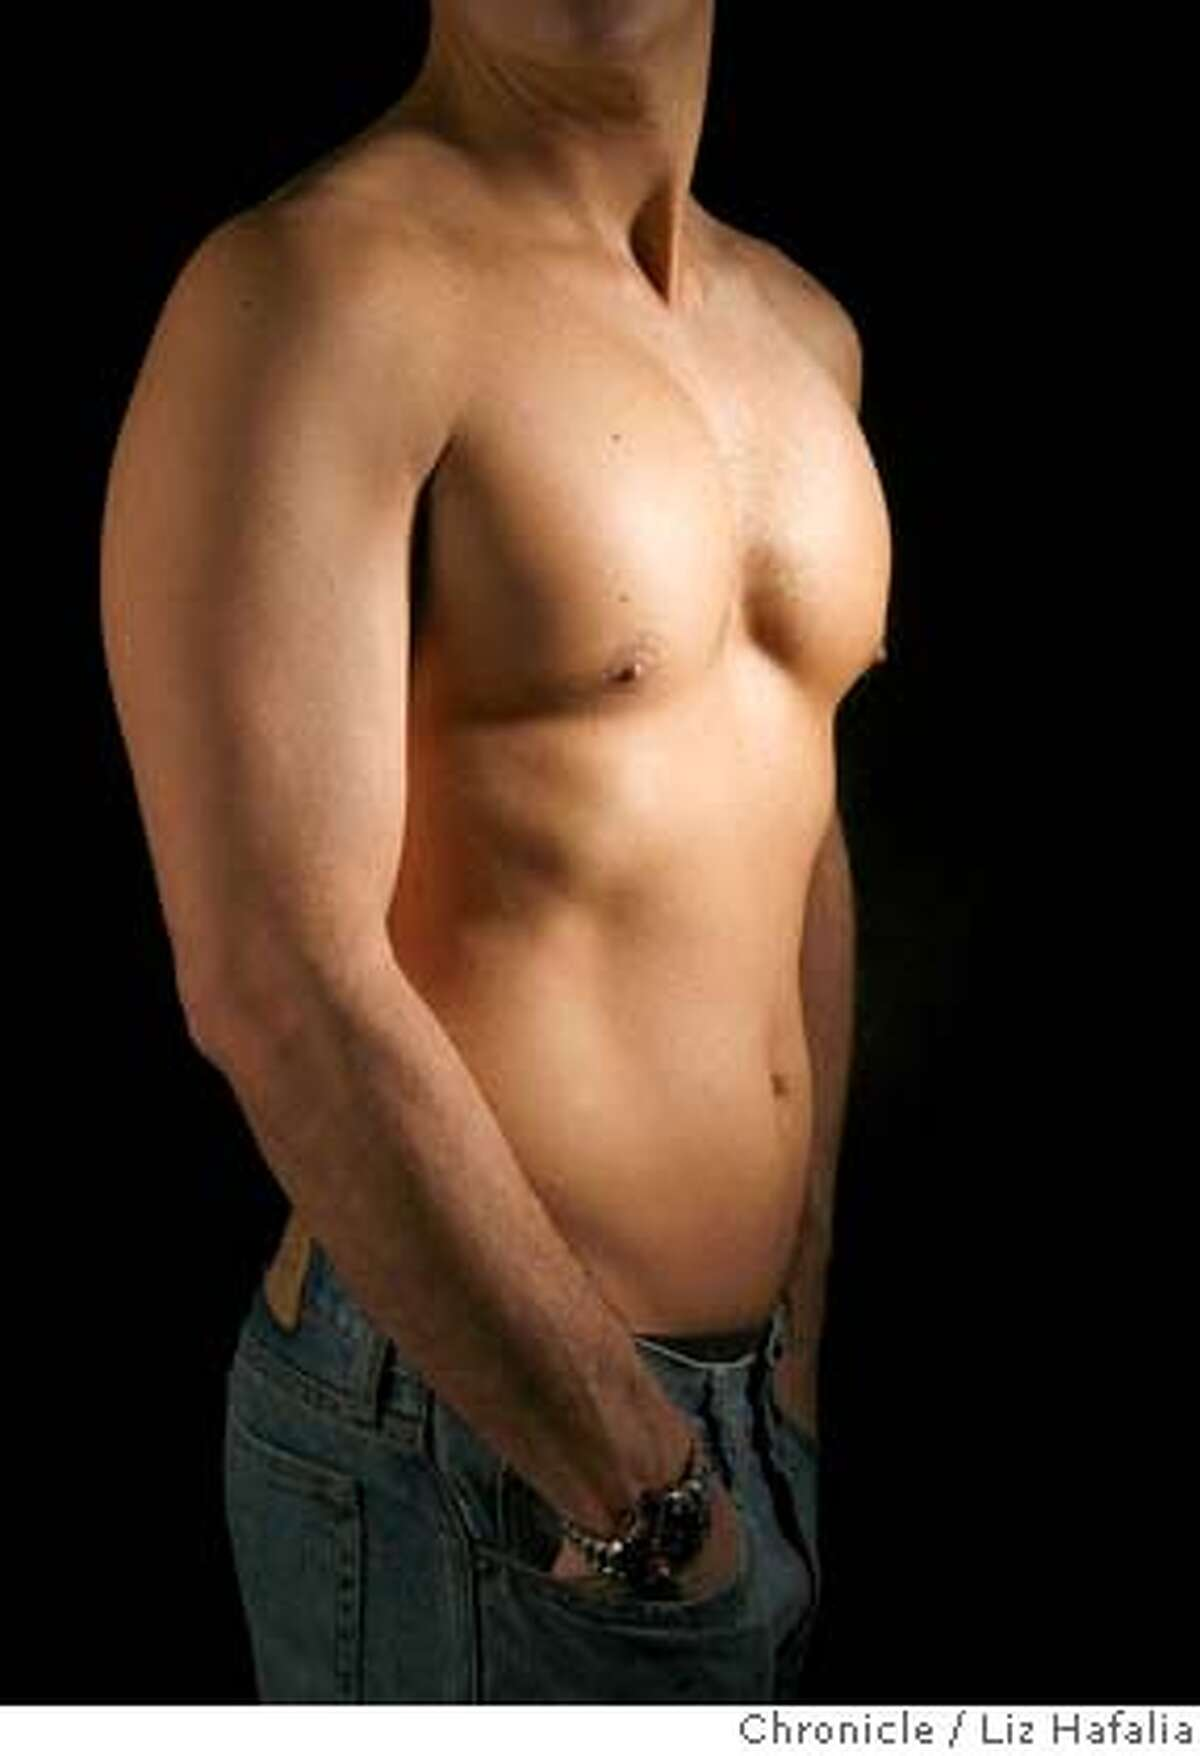 Pectoral implants were received in this man two years ago.